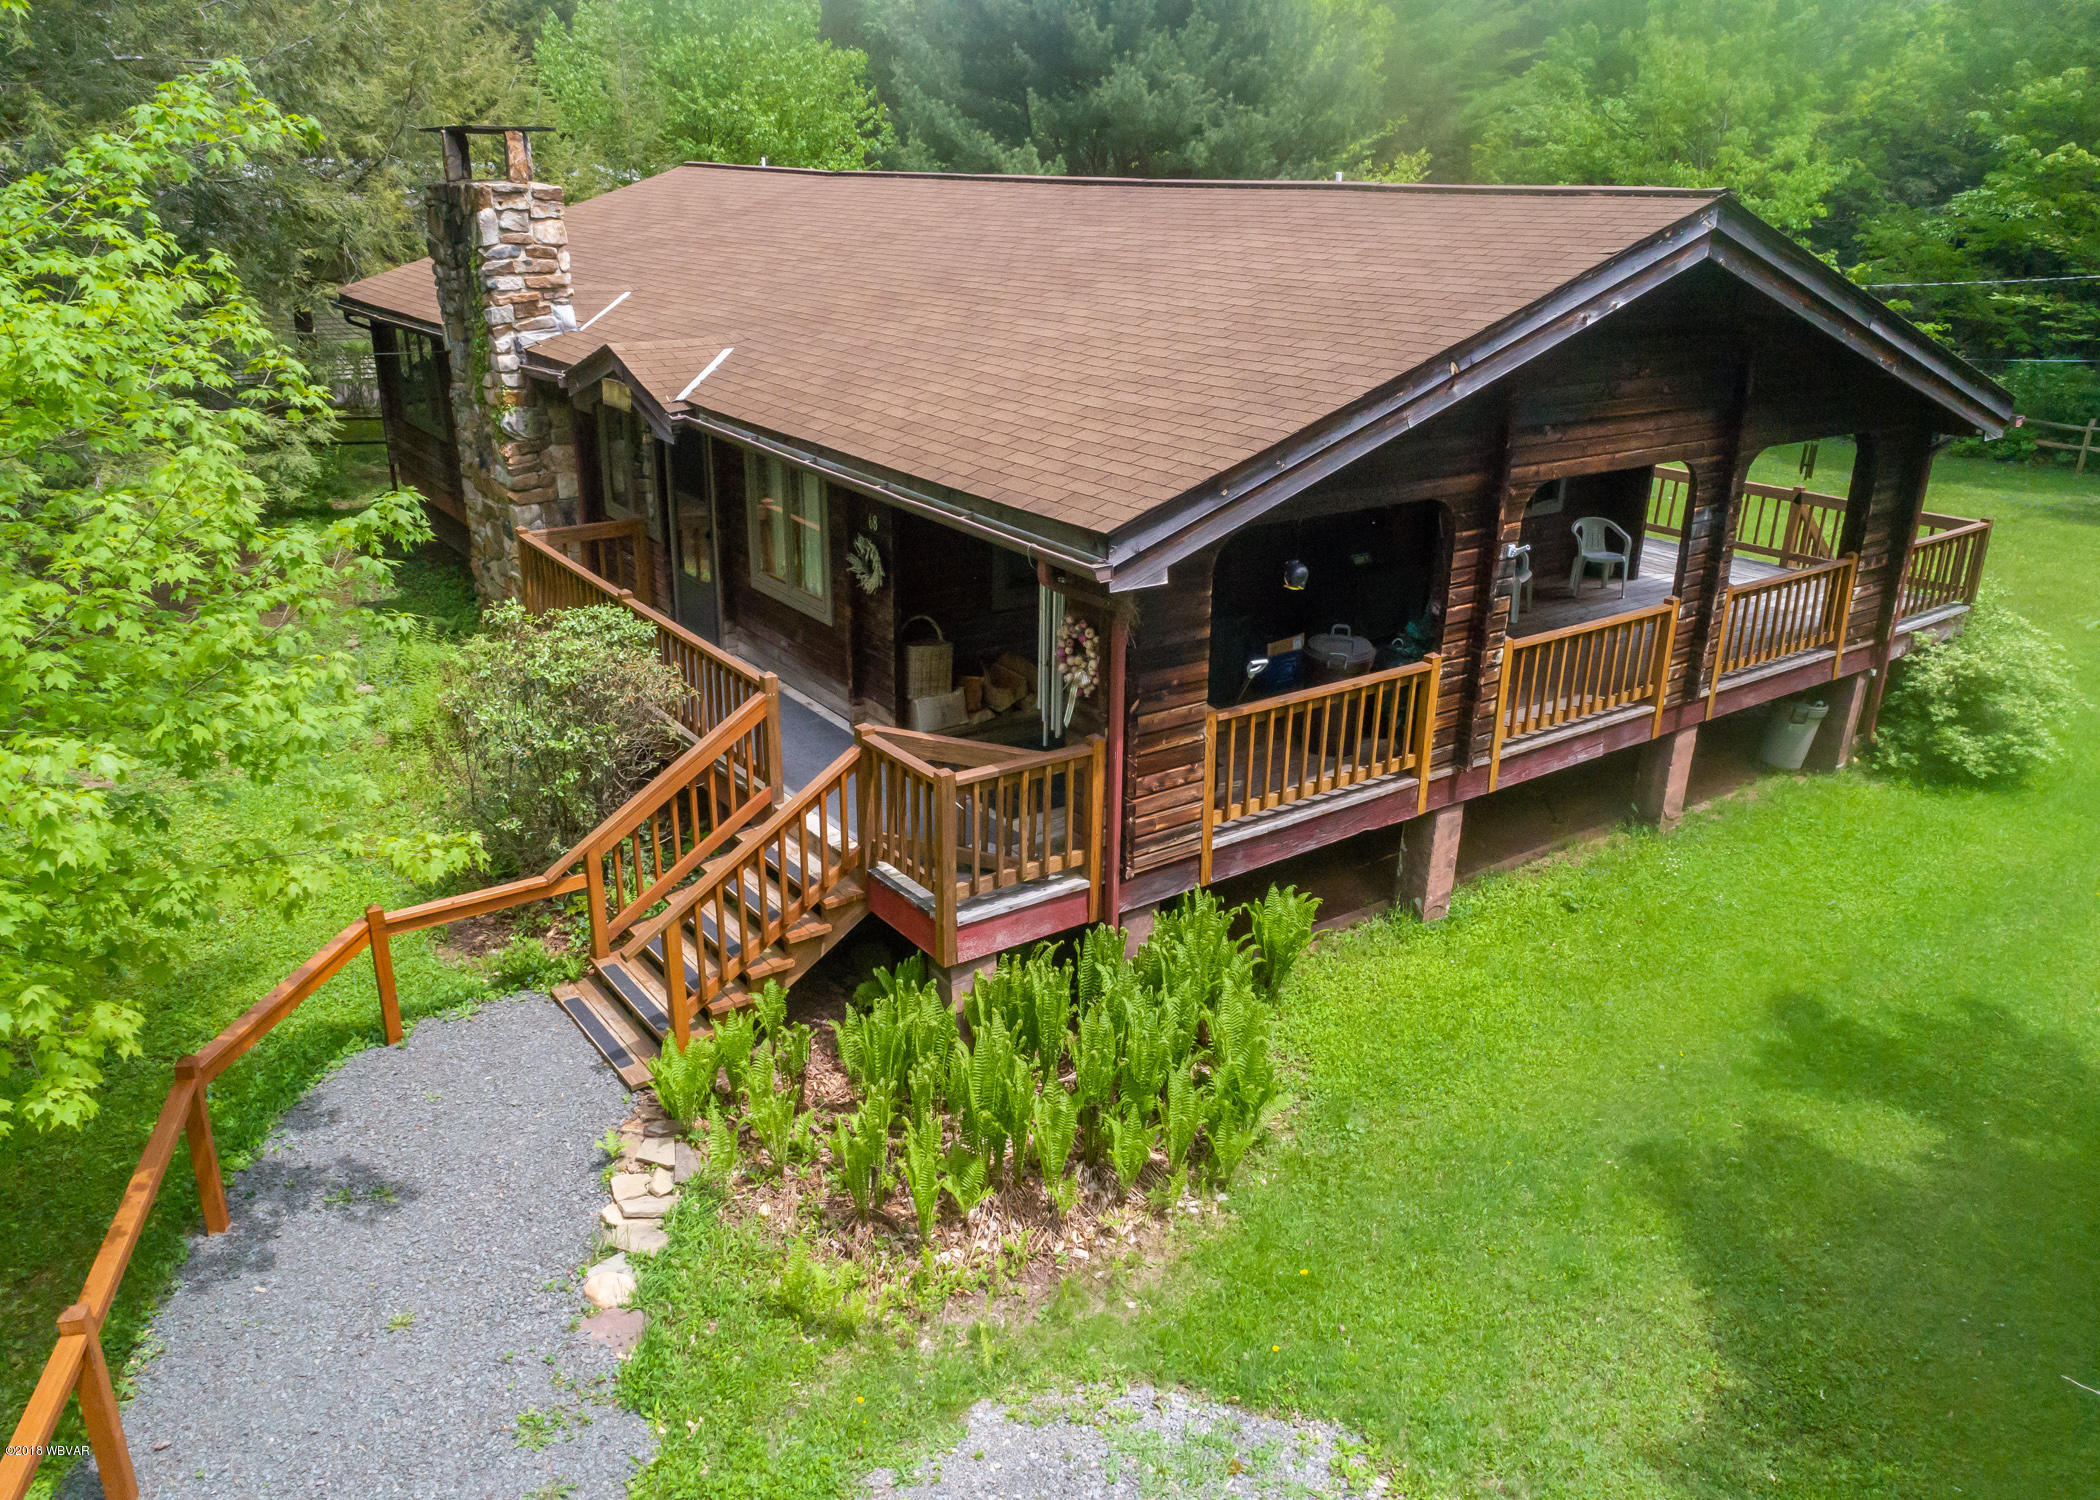 68 MINERAL SPRINGS AVENUE,Eagles Mere,PA 17731,4 Bedrooms Bedrooms,2 BathroomsBathrooms,Residential,MINERAL SPRINGS,WB-84158